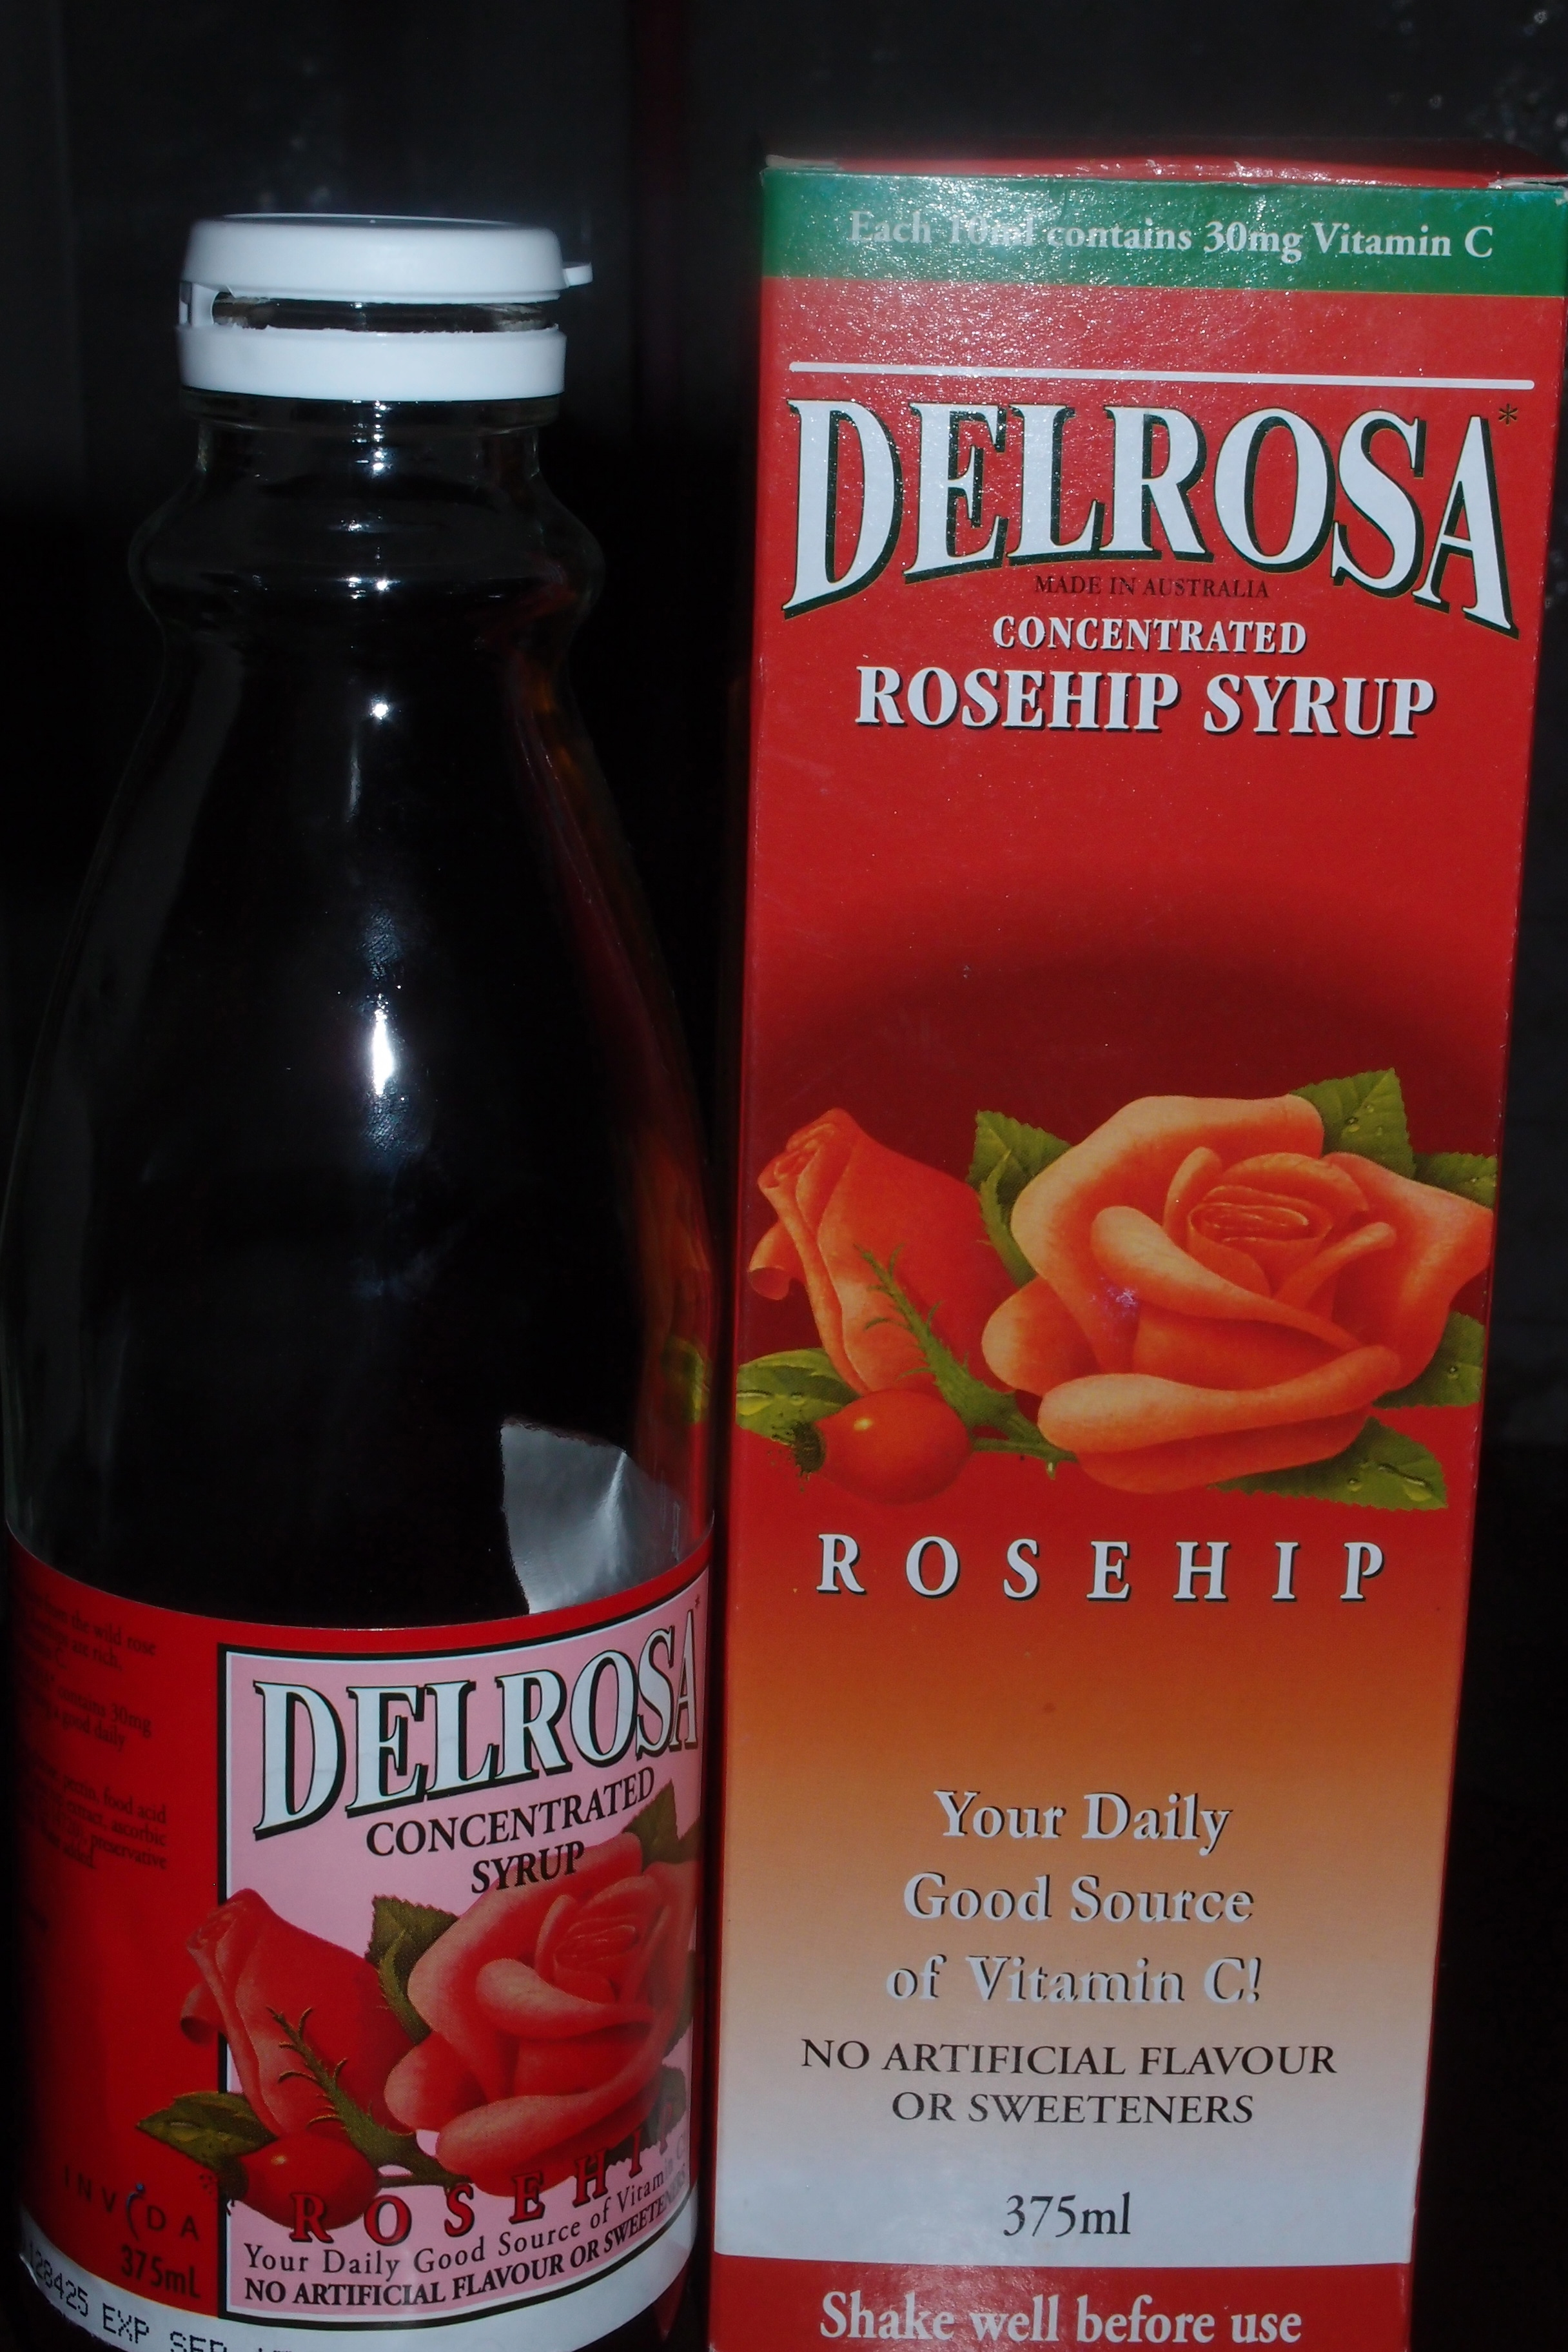 Delrosa For Babies : delrosa, babies, Where, Delrosa, Rosehip, Syrup, Babies, Viewer